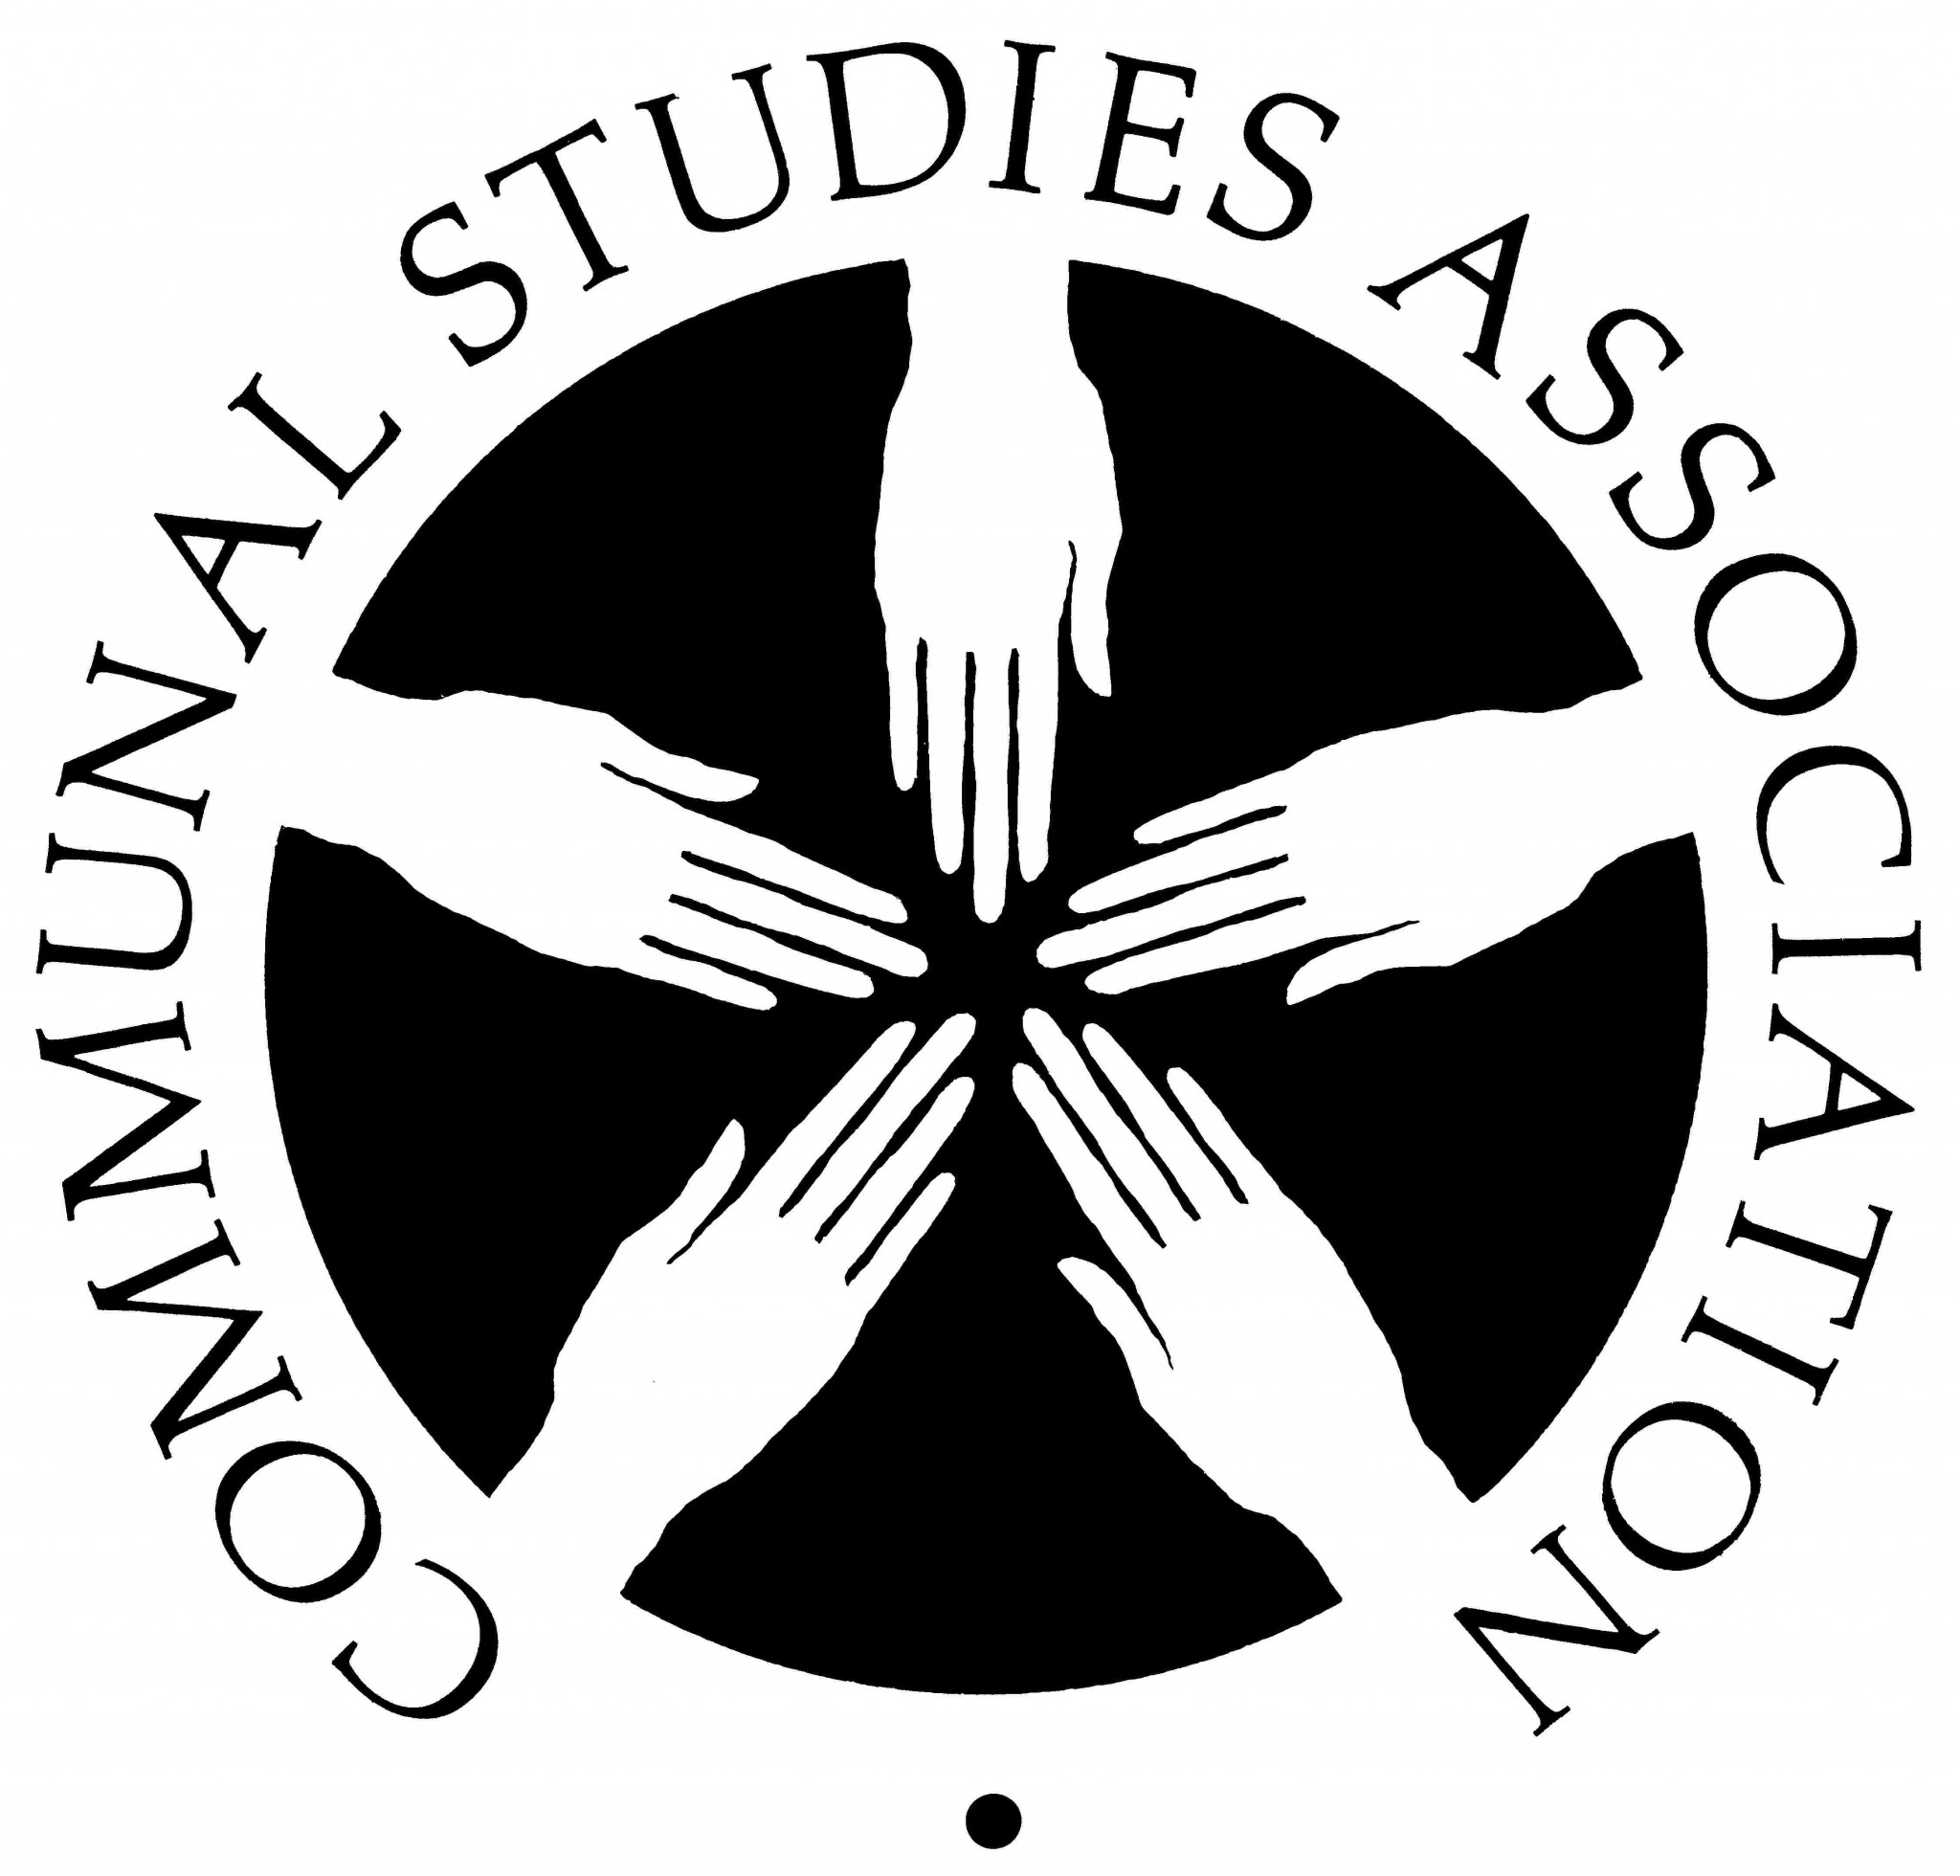 Communal Studies Association